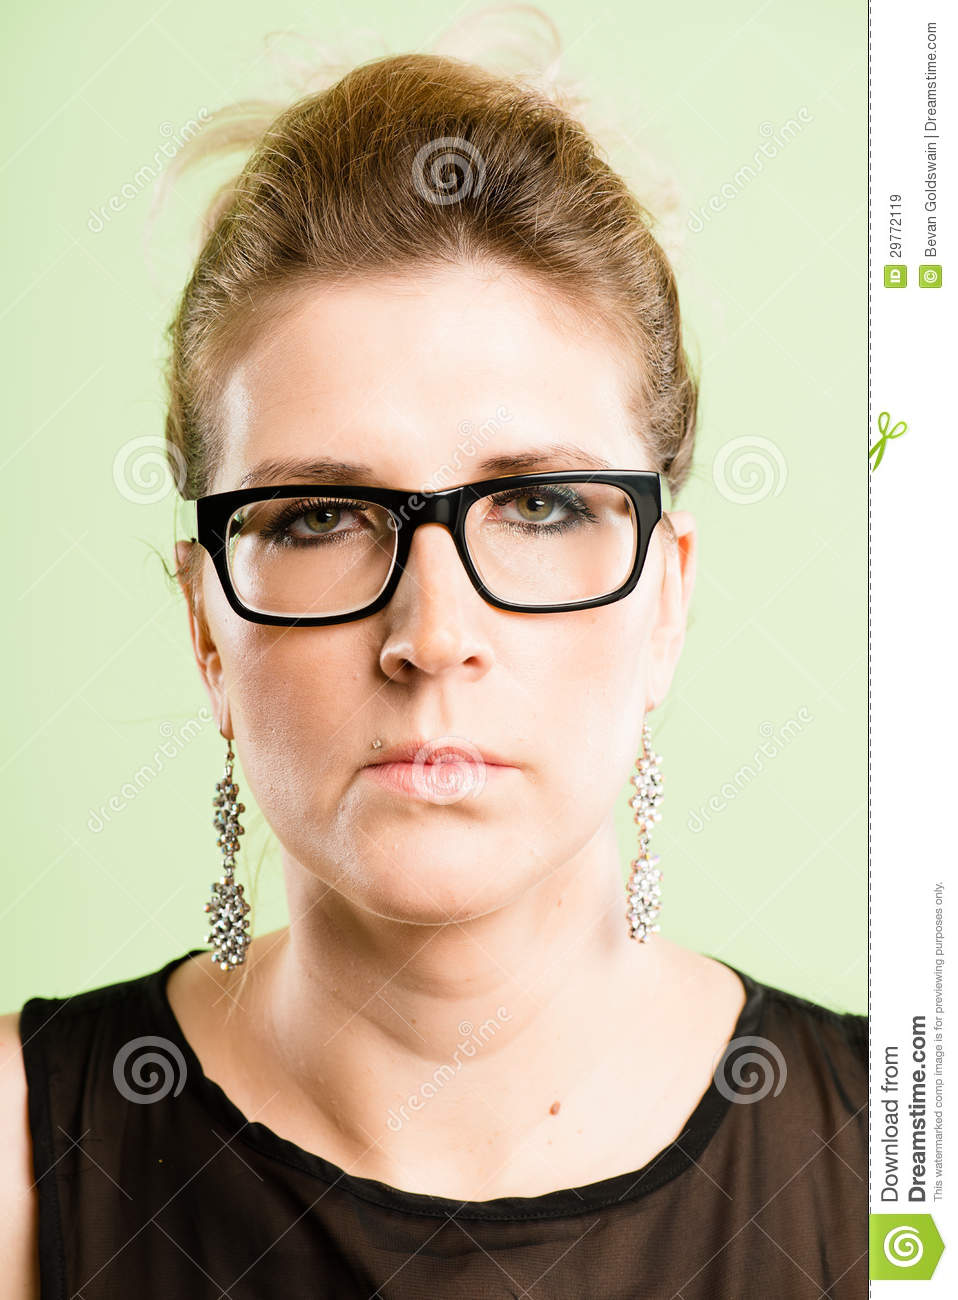 Serious woman portrait real people high definition green background